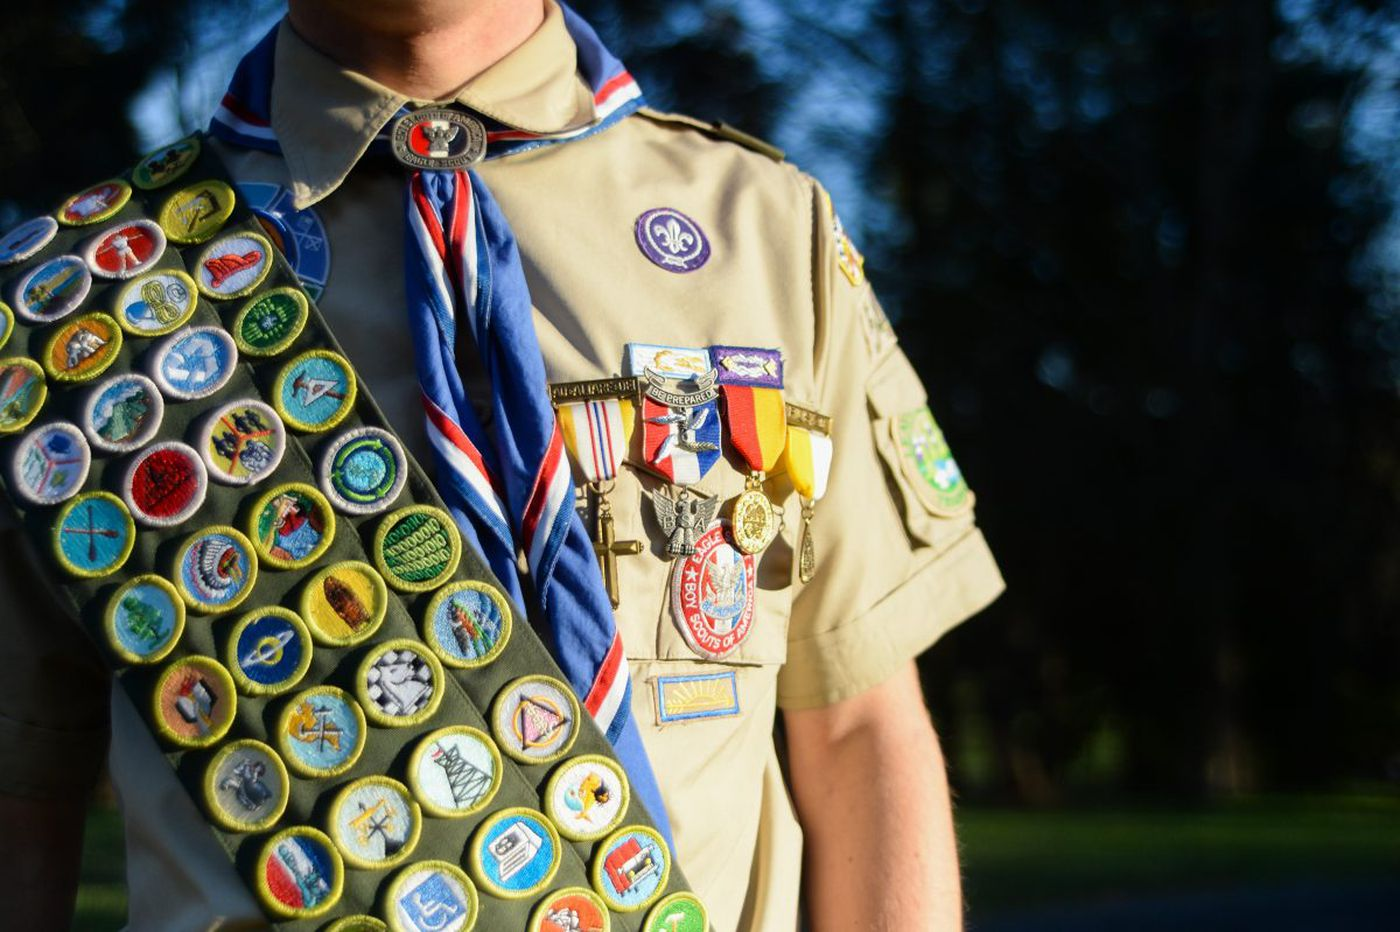 A rare achievement: Earning all 139 Boy Scout badges